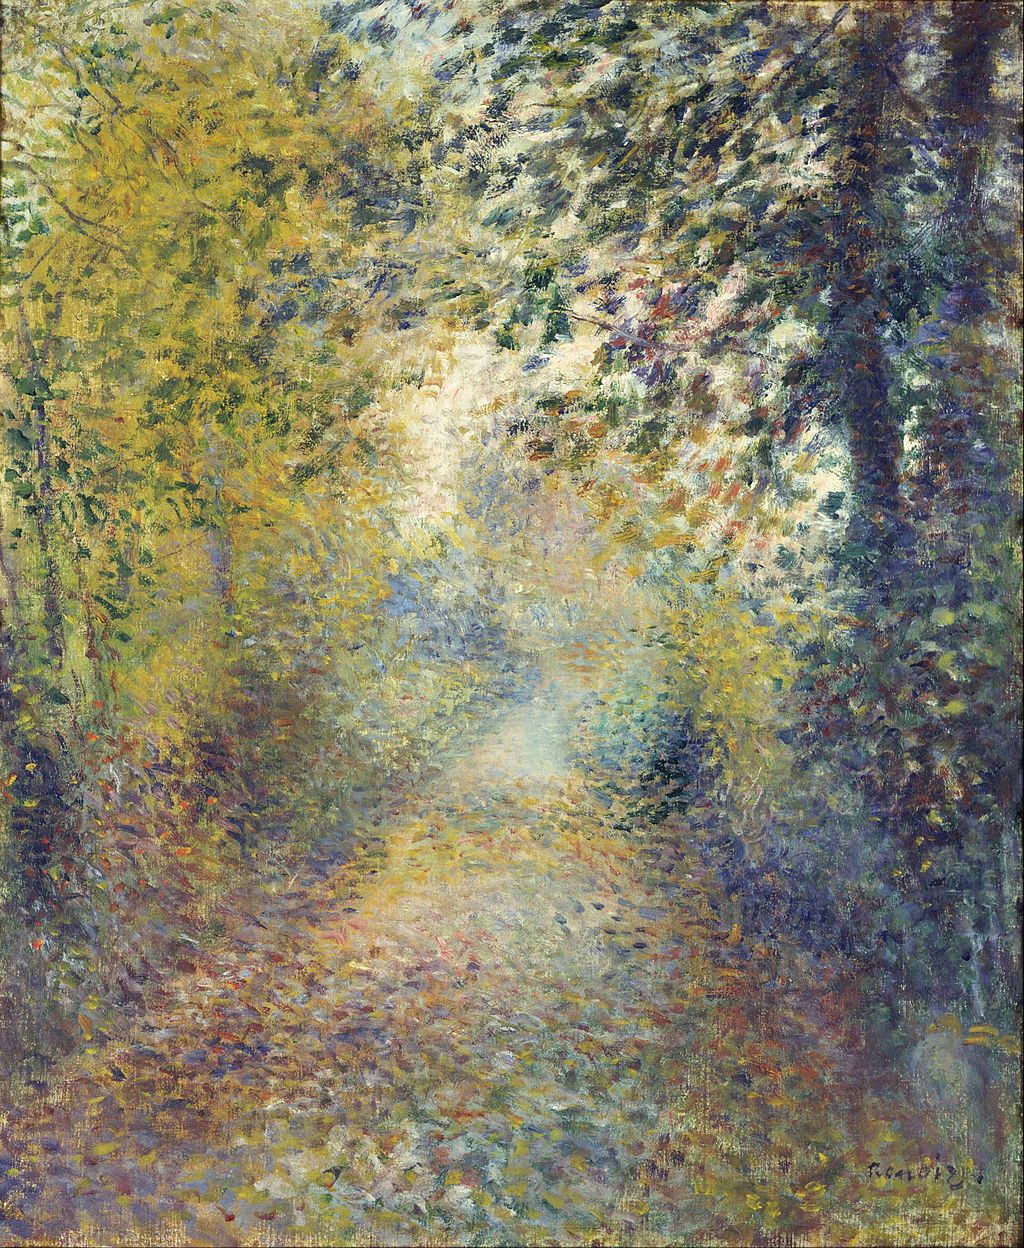 Pierre-Auguste Renoir - In the Woods - Google Art Project